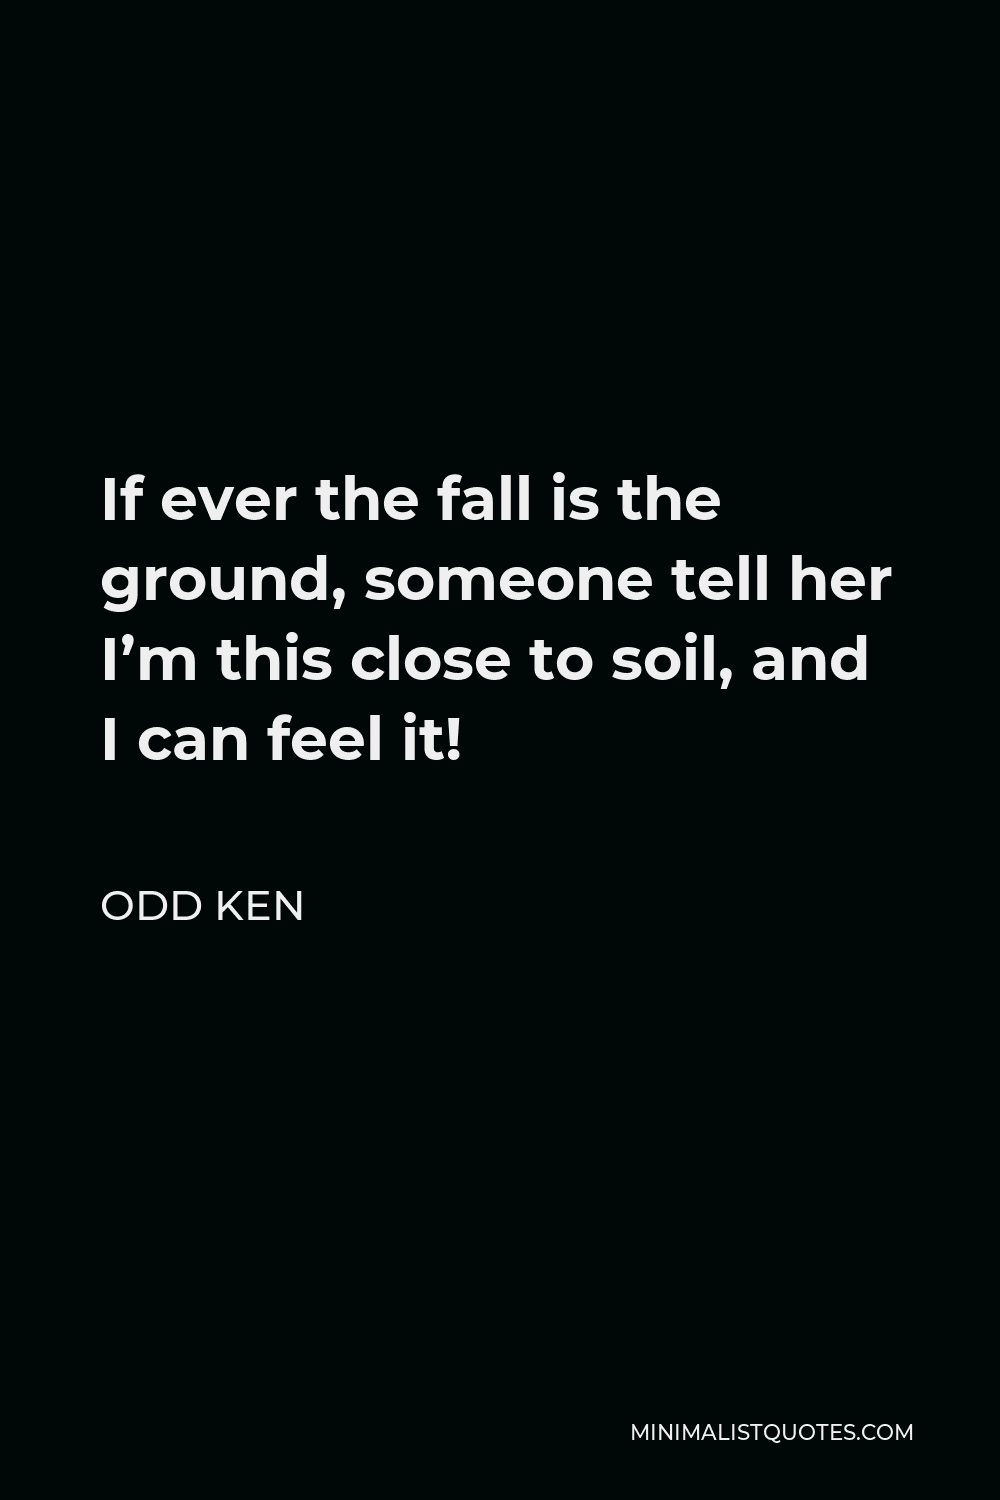 Odd Ken Quote - If ever the fall is the ground, someone tell her I'm this close to soil, and I can feel it!